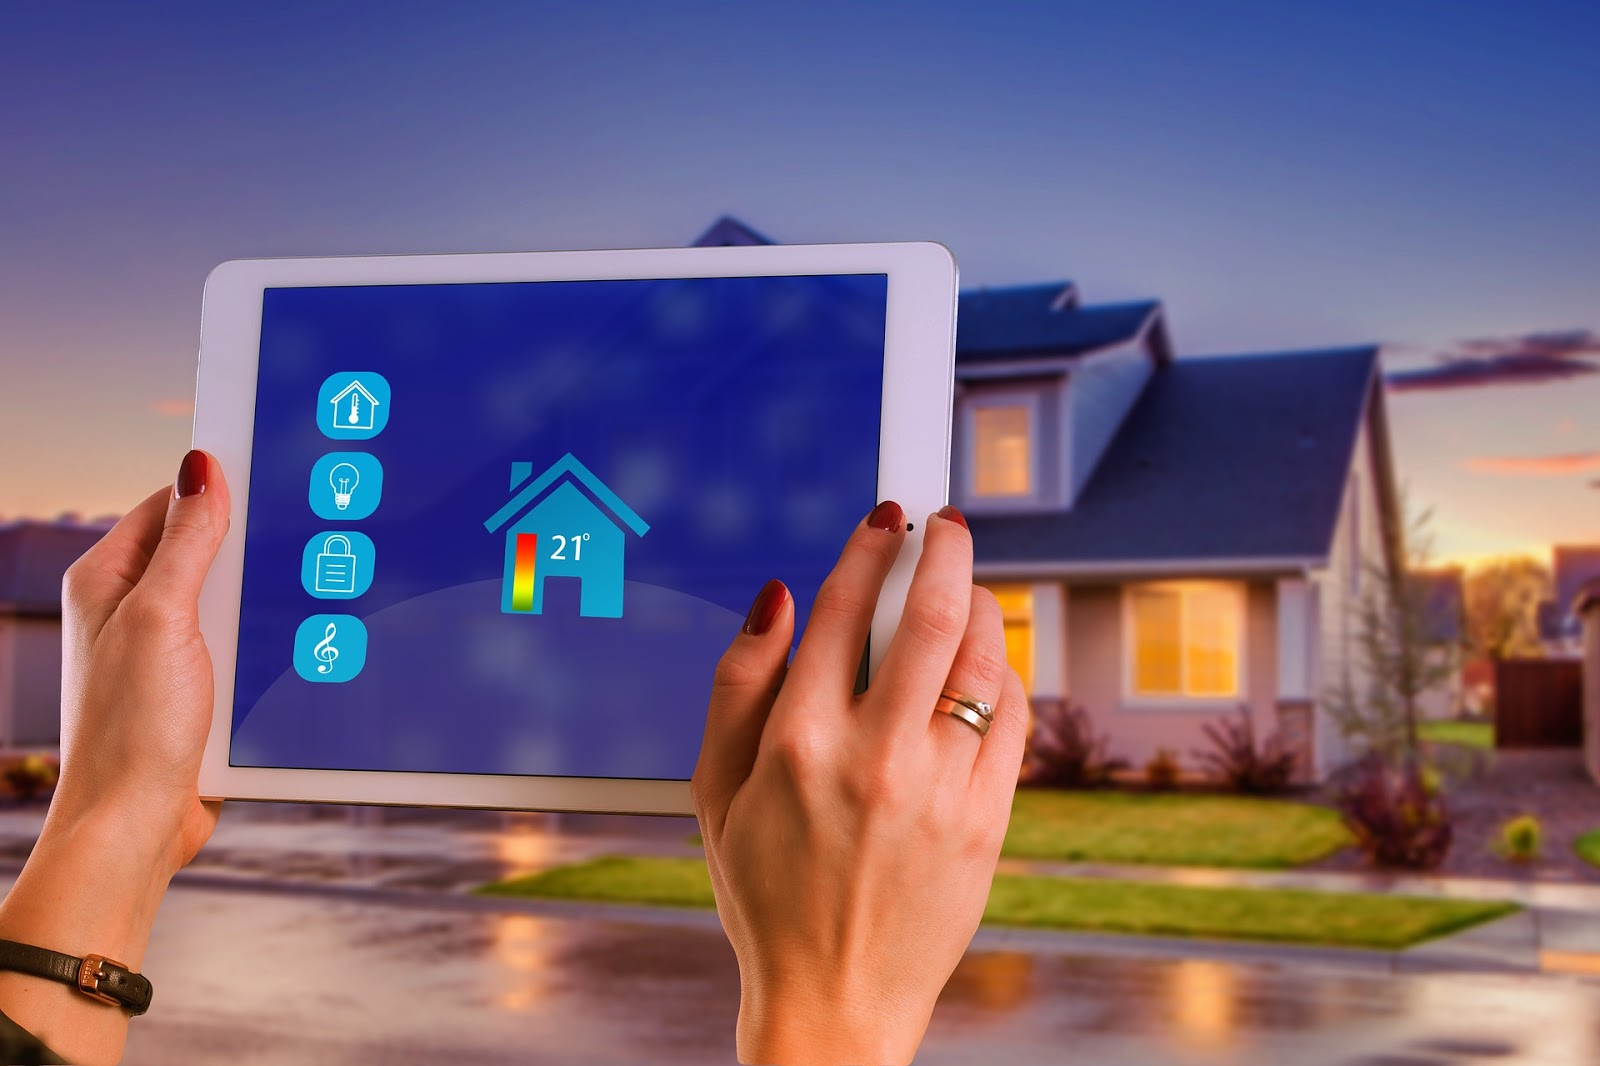 4 Ways To Make Your House Smarter And Safer